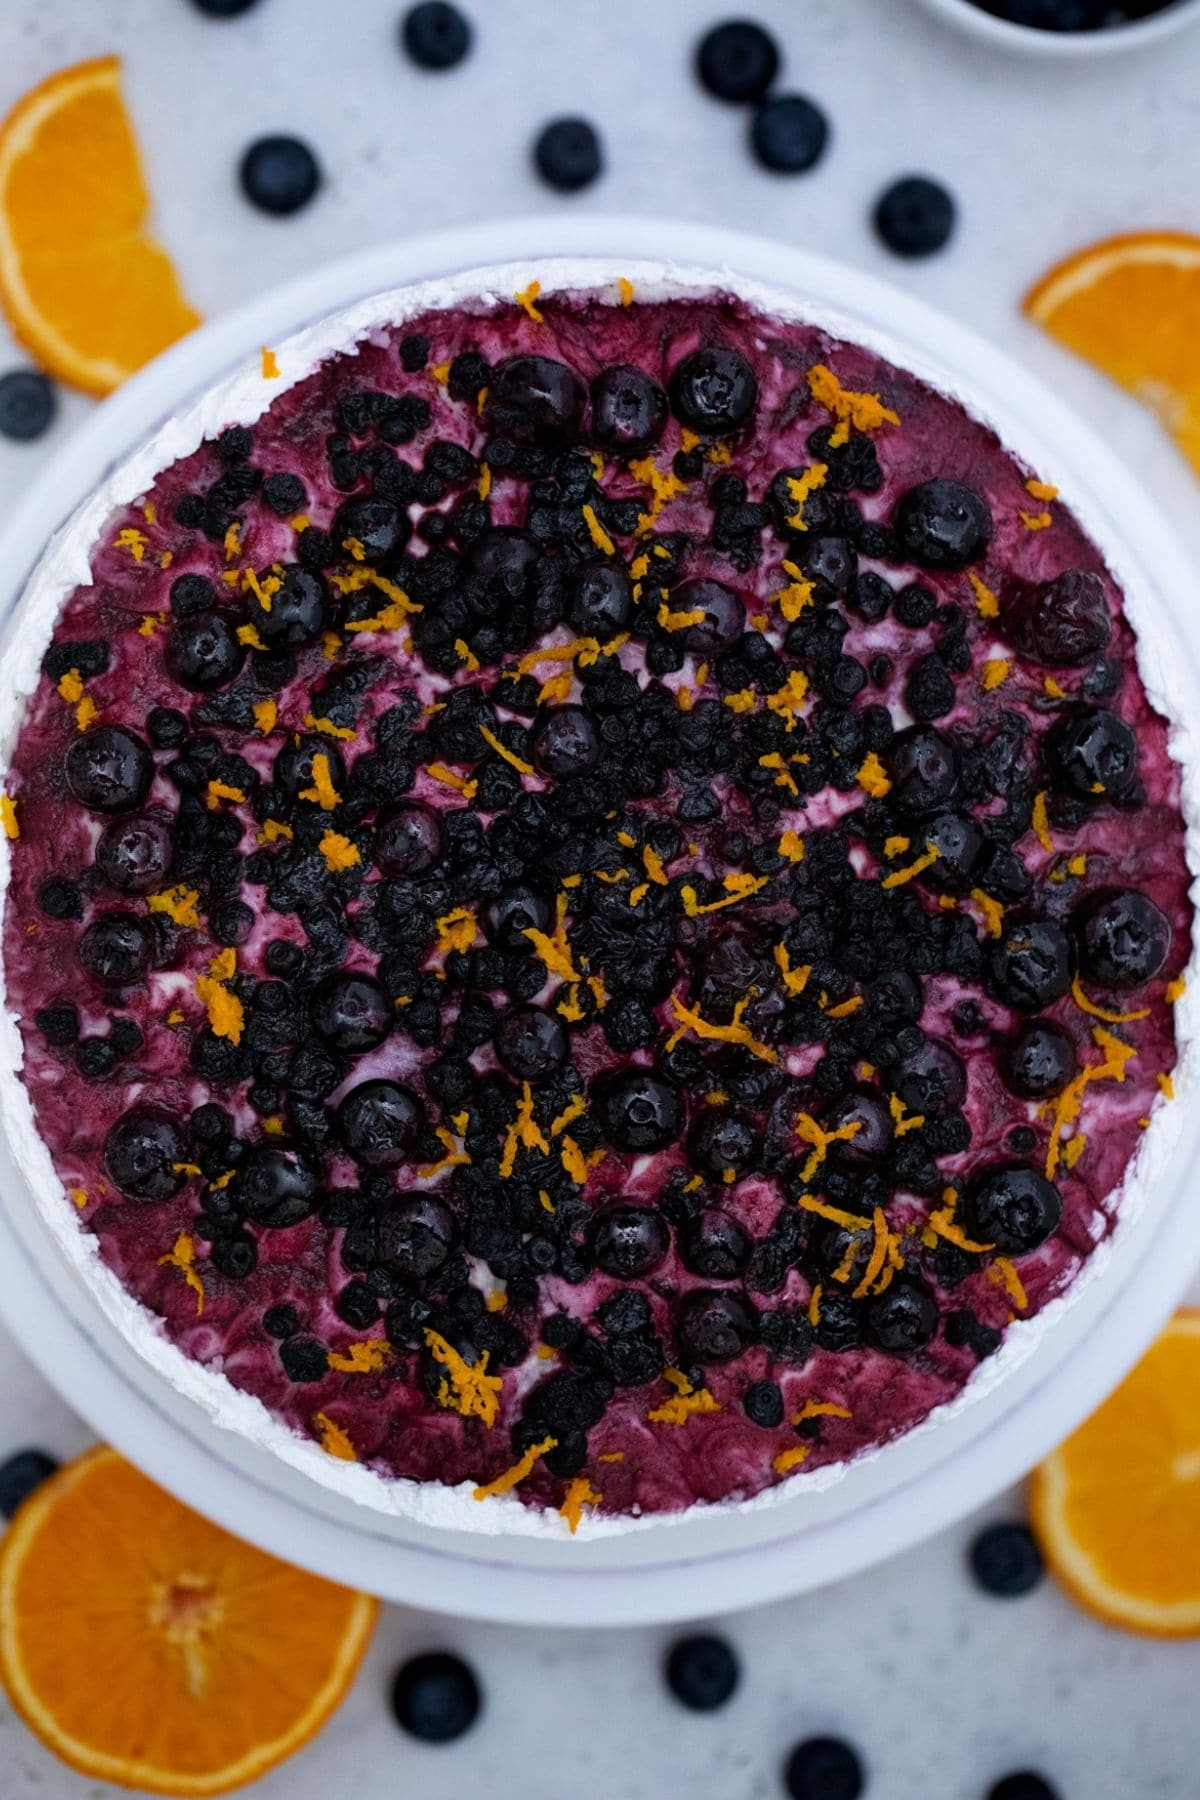 Cake topped with blueberry and cranberry compote and orange zest